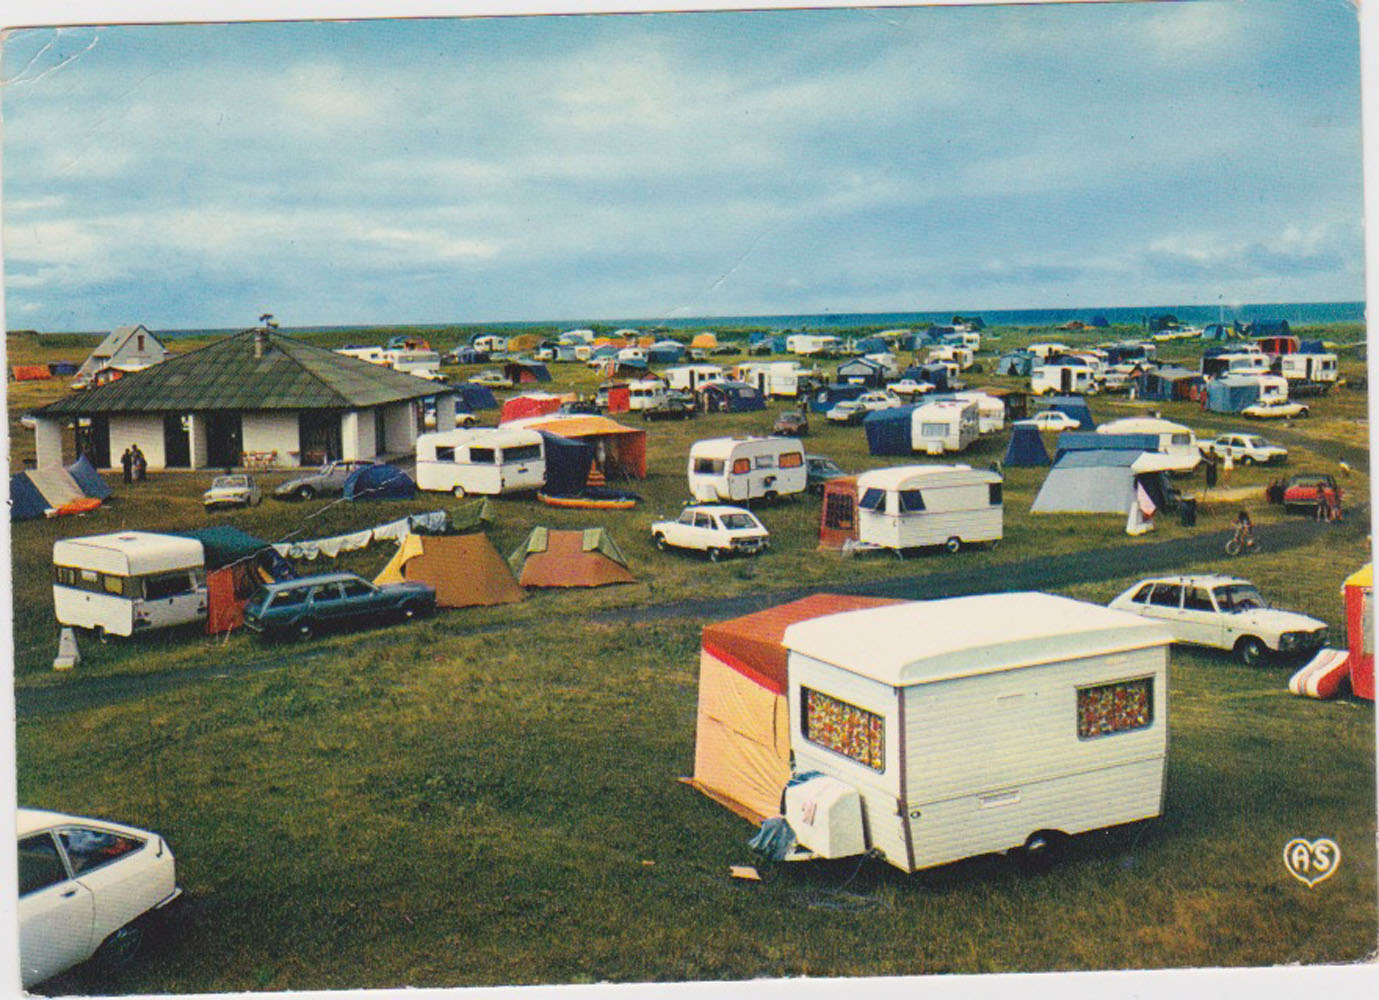 1976 St Martin Sites Camping Vanlee © collection Jean Claude (...)